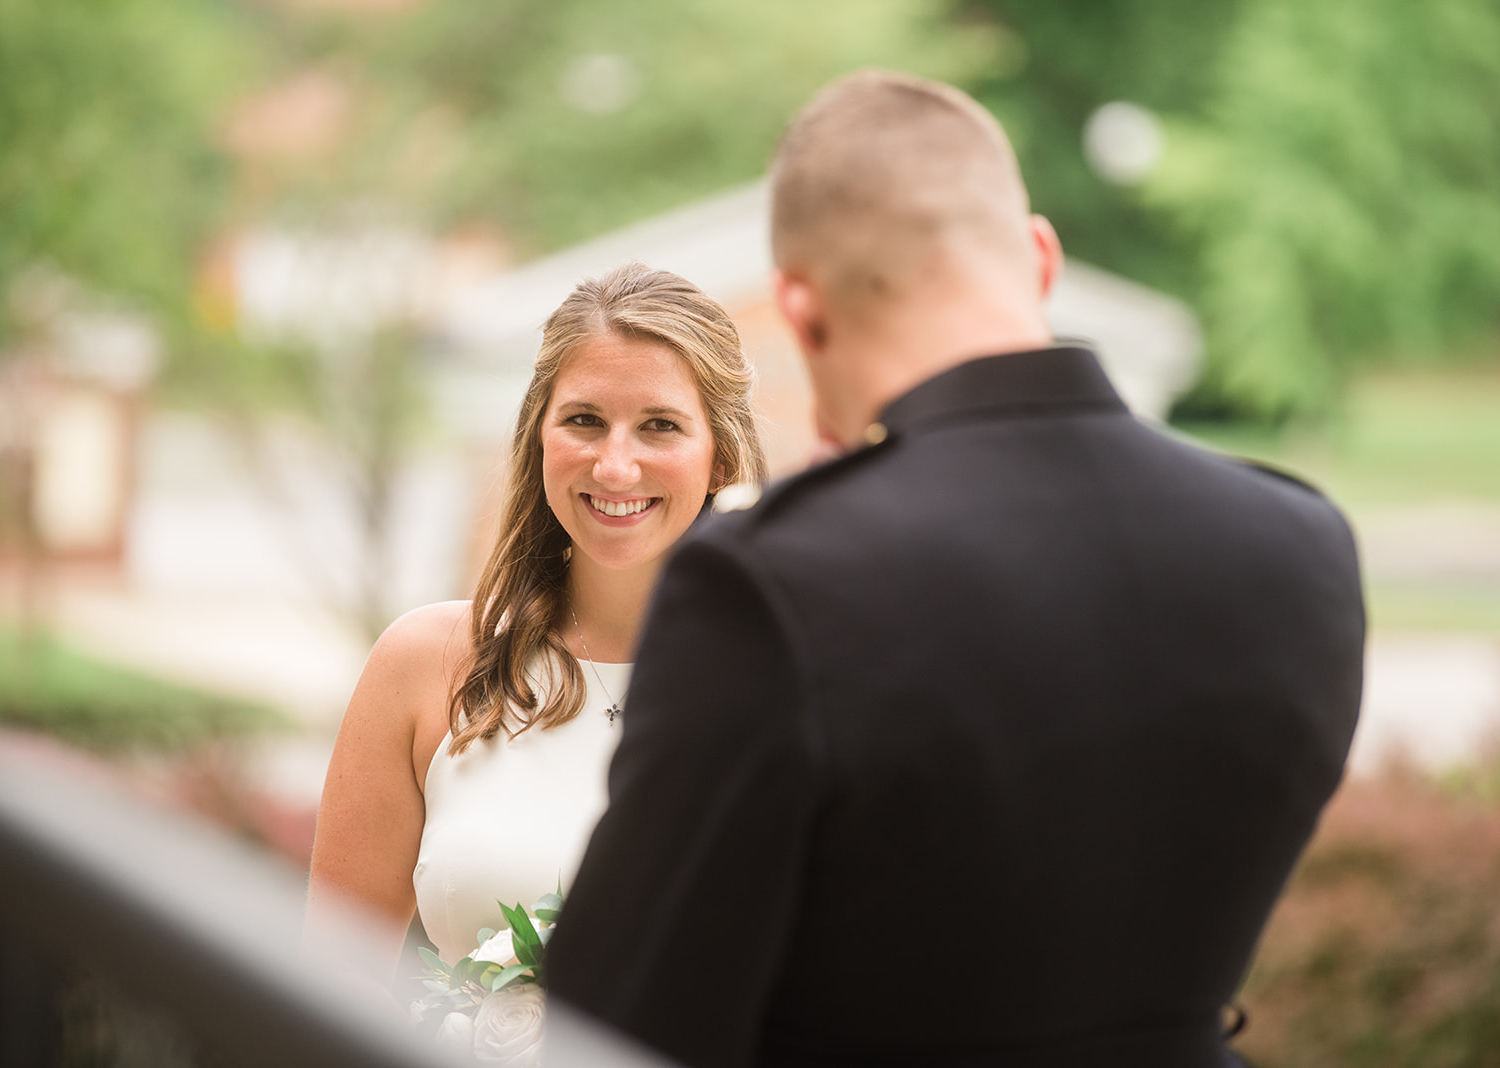 Bride smiles as she looks at the groom